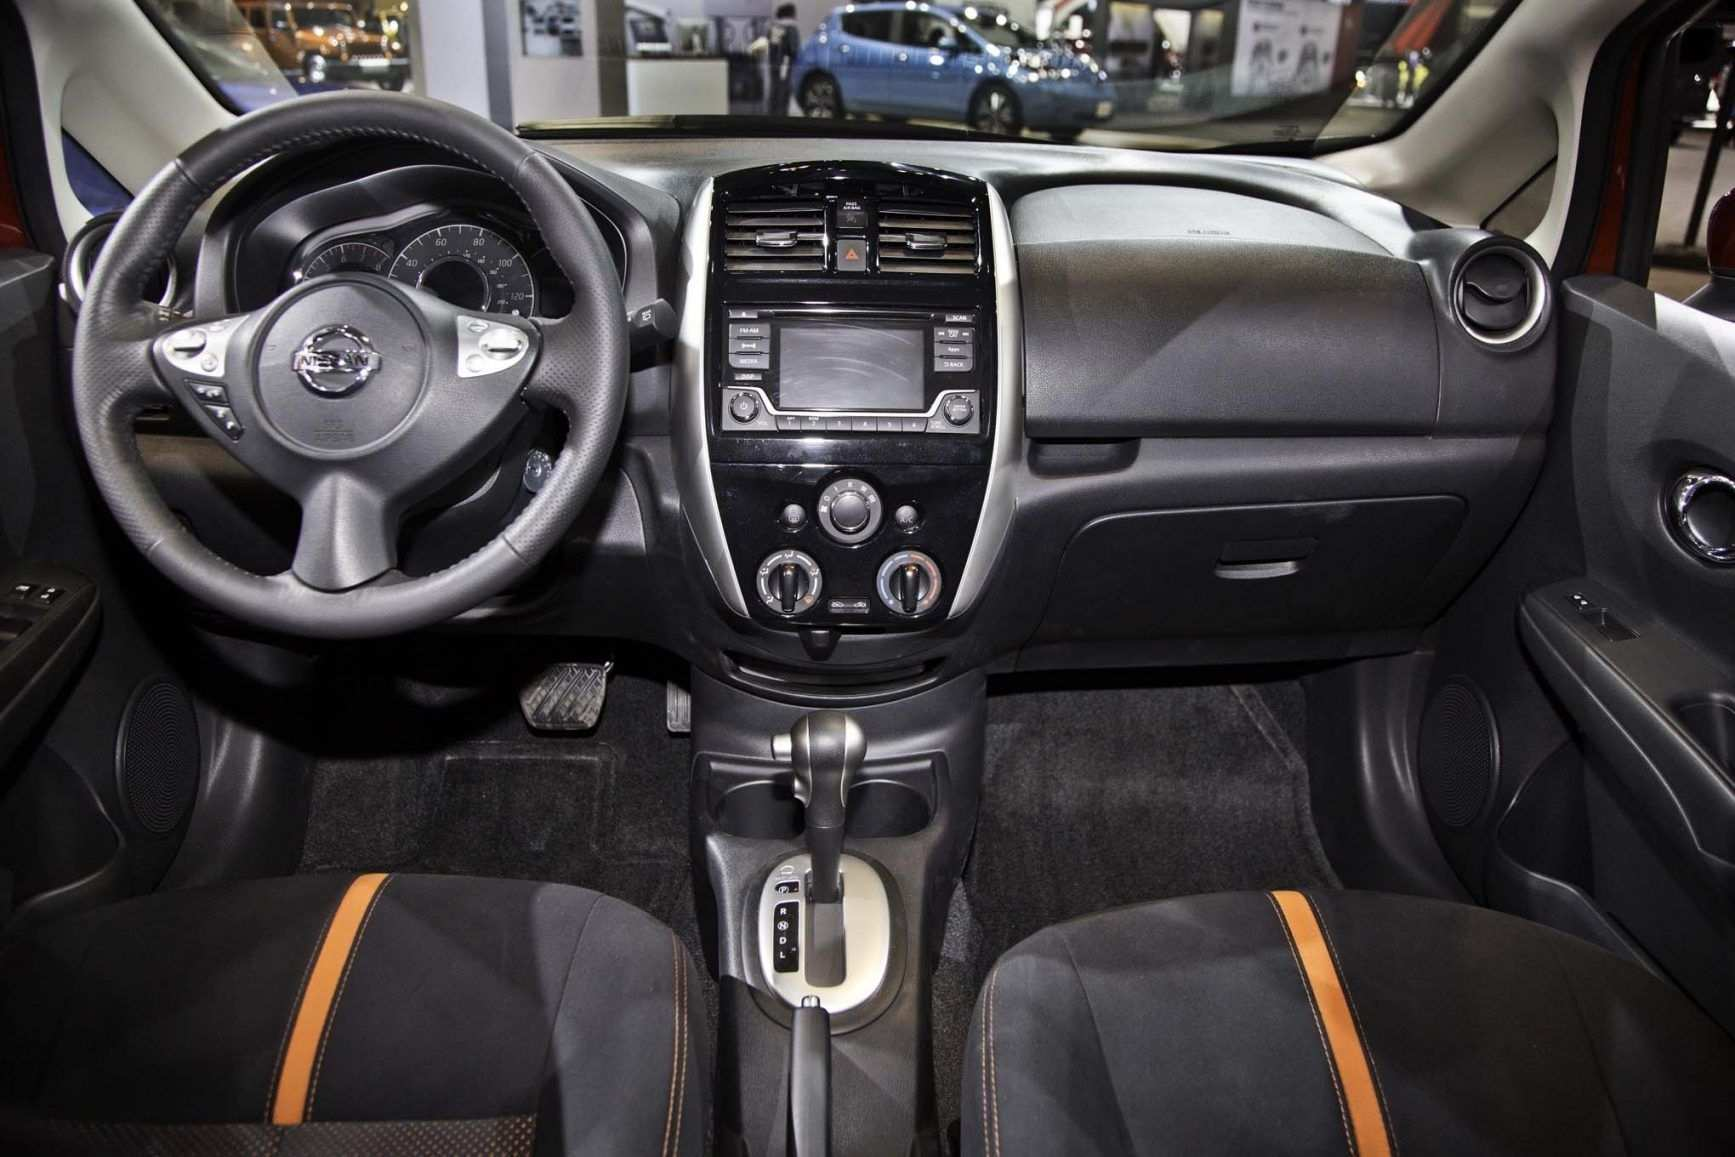 47 Best Nissan Versa 2019 Interior Configurations